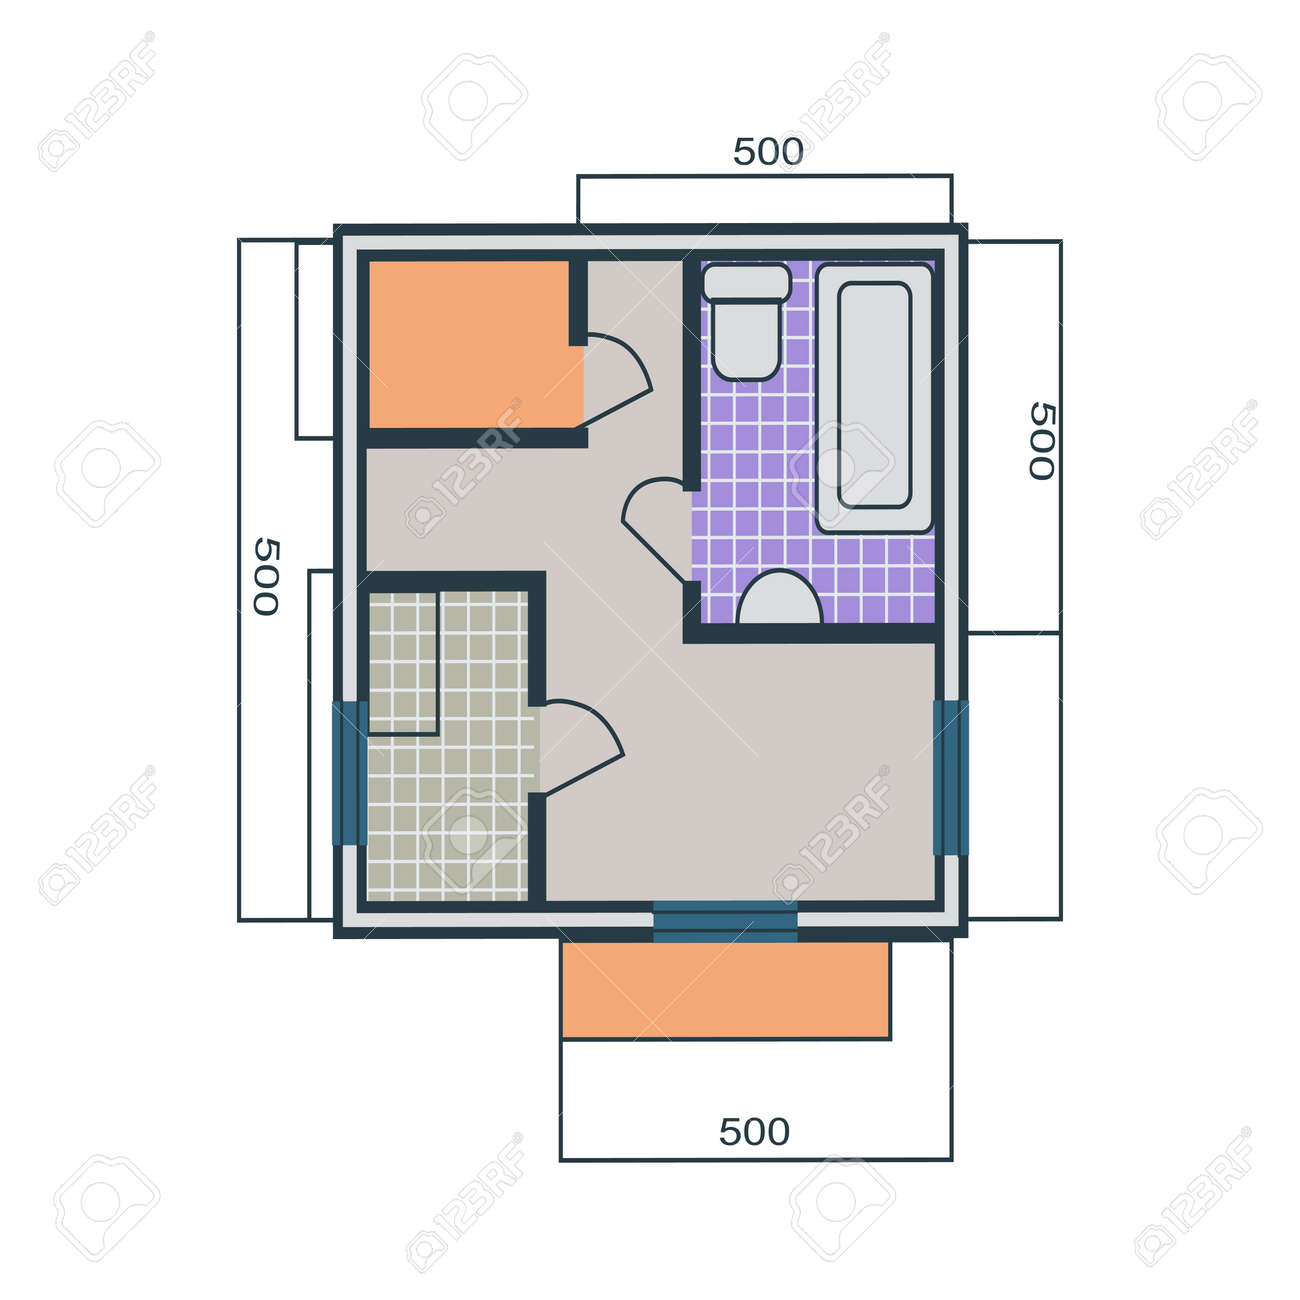 Apartments Plan In Flat Style Drawing One Bedroom Apartment With A Living Room Bathroom Balcony Illustration For Design Building Real Estate Company Ad Isolated On White Background Kliparty Vektory I Nabor Illyustracij Bez